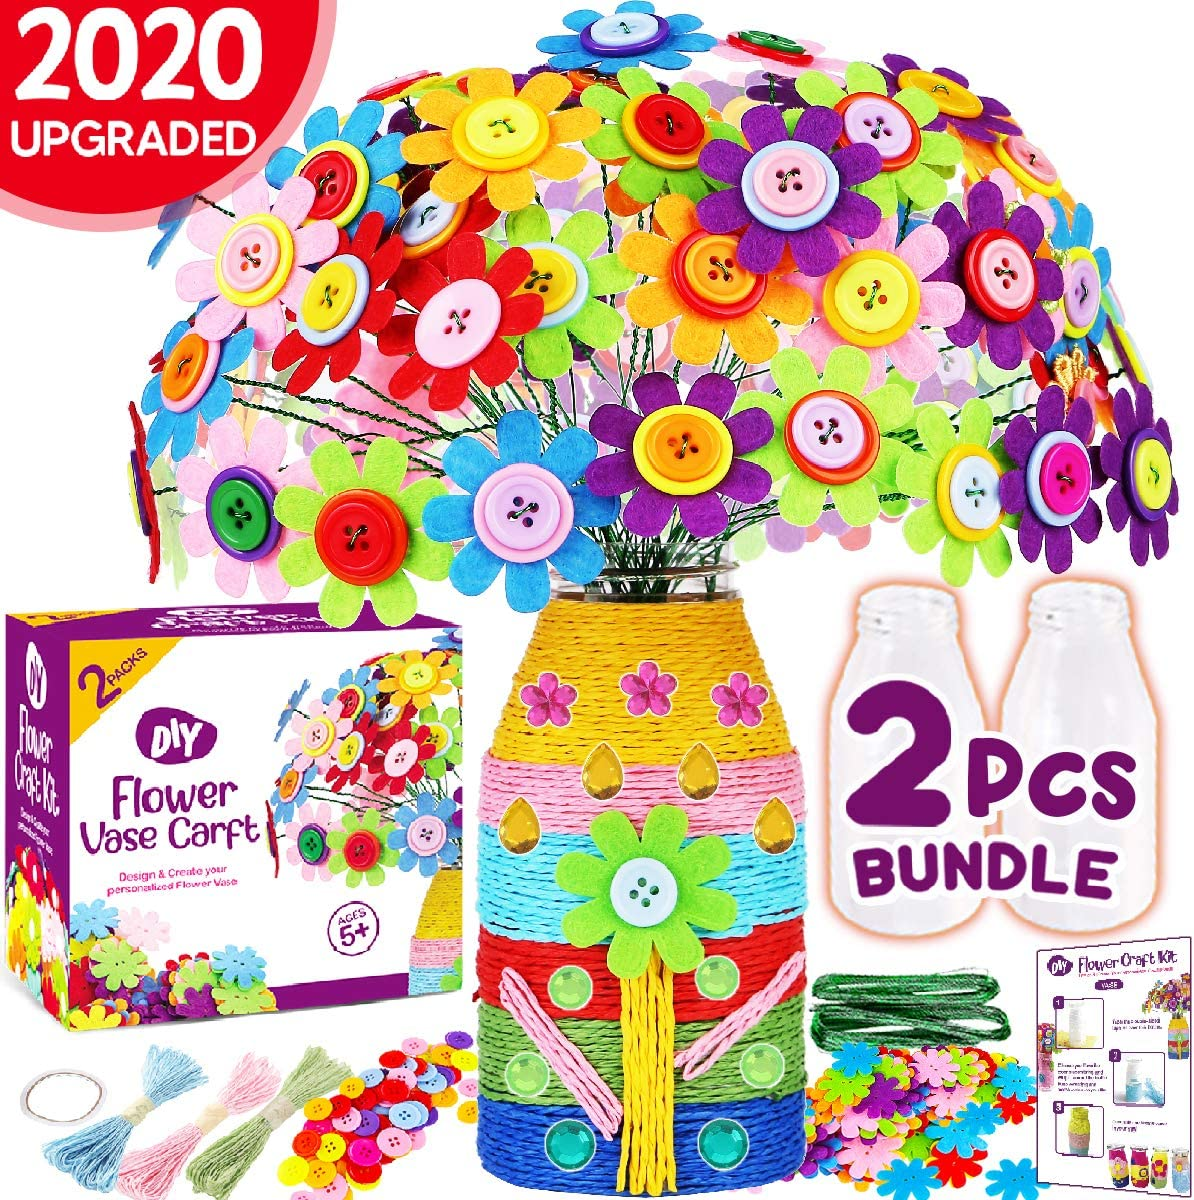 Make Your Own Buttons Flower Bouquet Craft for Girls Boys Age 4 5 6 7 8 9 10 Years Old Arts and Crafts Colorful Button Art Felt Flower Toy DIY Kit Innorock Flower Vase Craft Kit for Kids